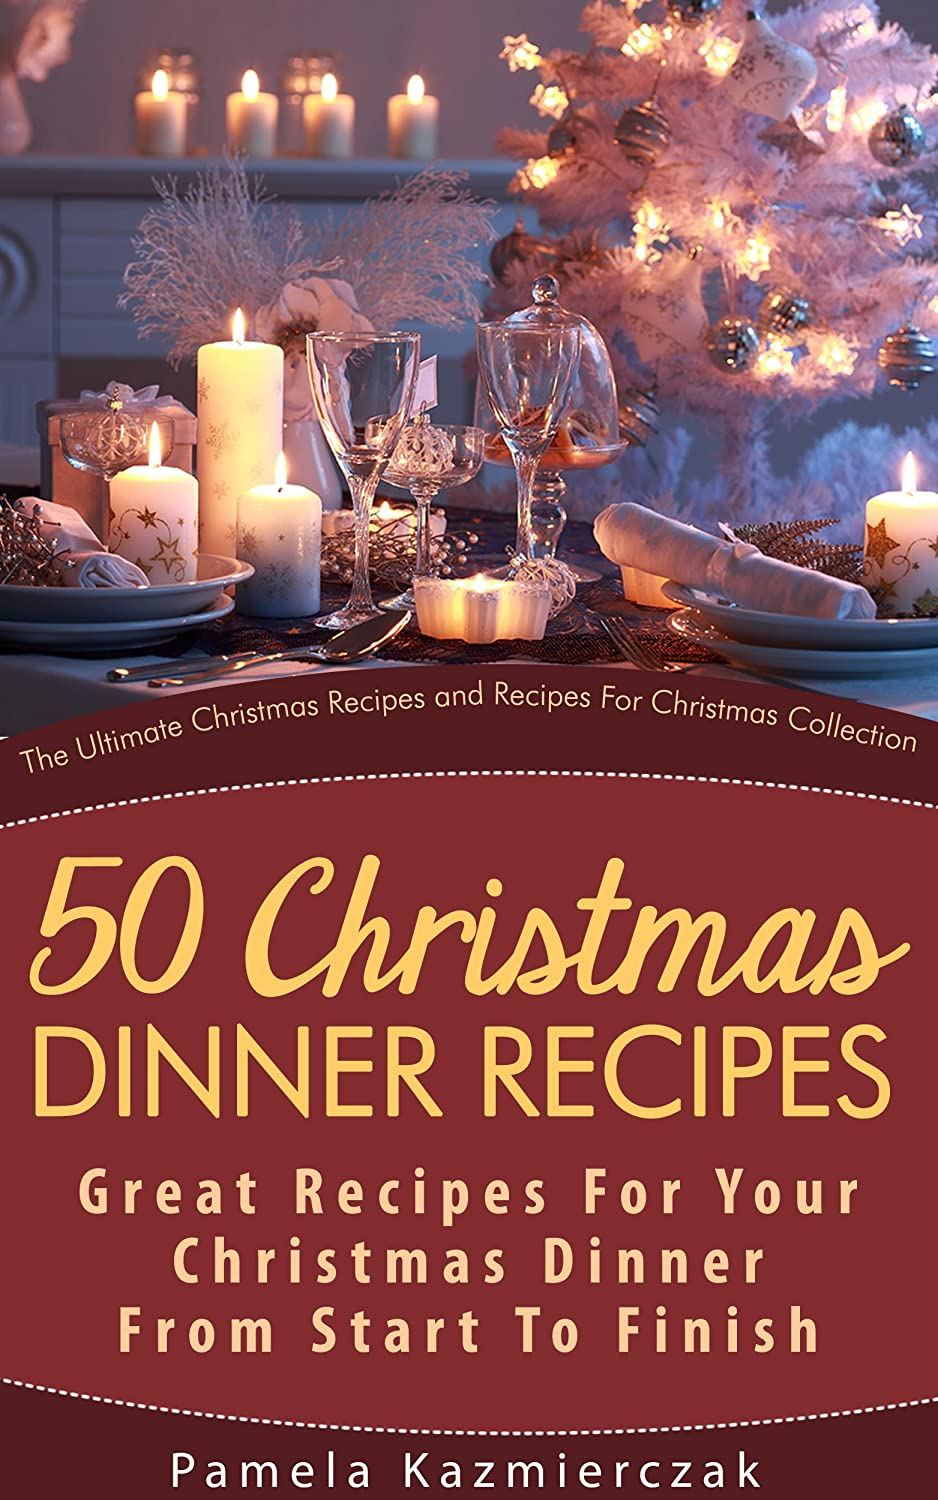 http://www.amazon.com/50-Christmas-Dinner-Recipes-Collection-ebook/dp/B00AEJG9YI/ref=as_sl_pc_ss_til?tag=lettfromahome-20&linkCode=w01&linkId=2HB66GEBO3WDVXIY&creativeASIN=B00AEJG9YI